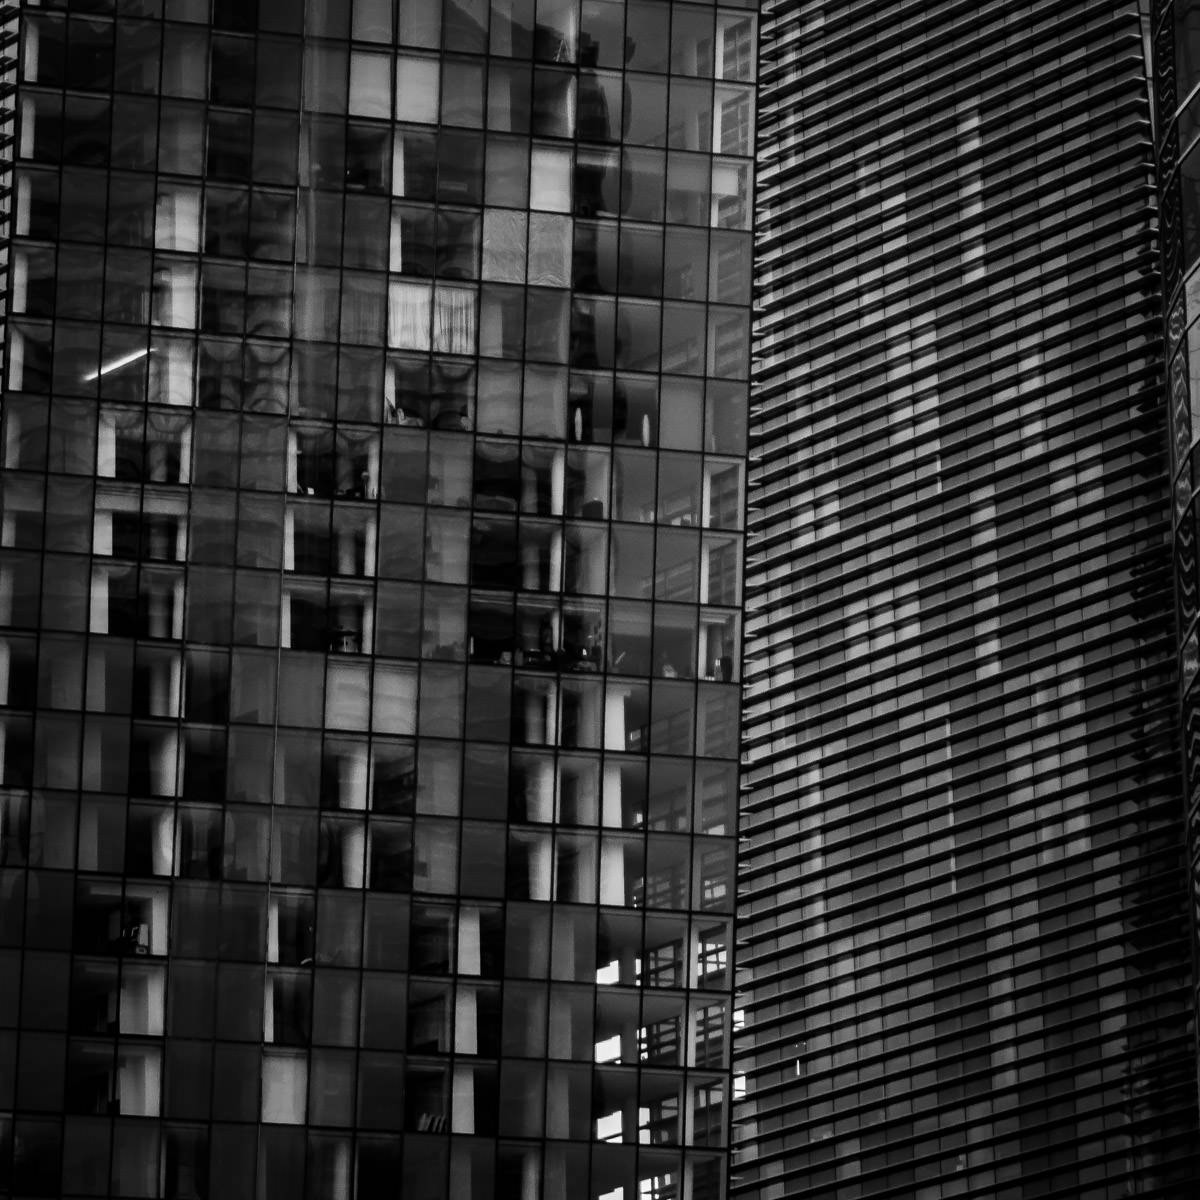 Abstract architectural detail of Las Vegas' Veer Towers at CityCenter.